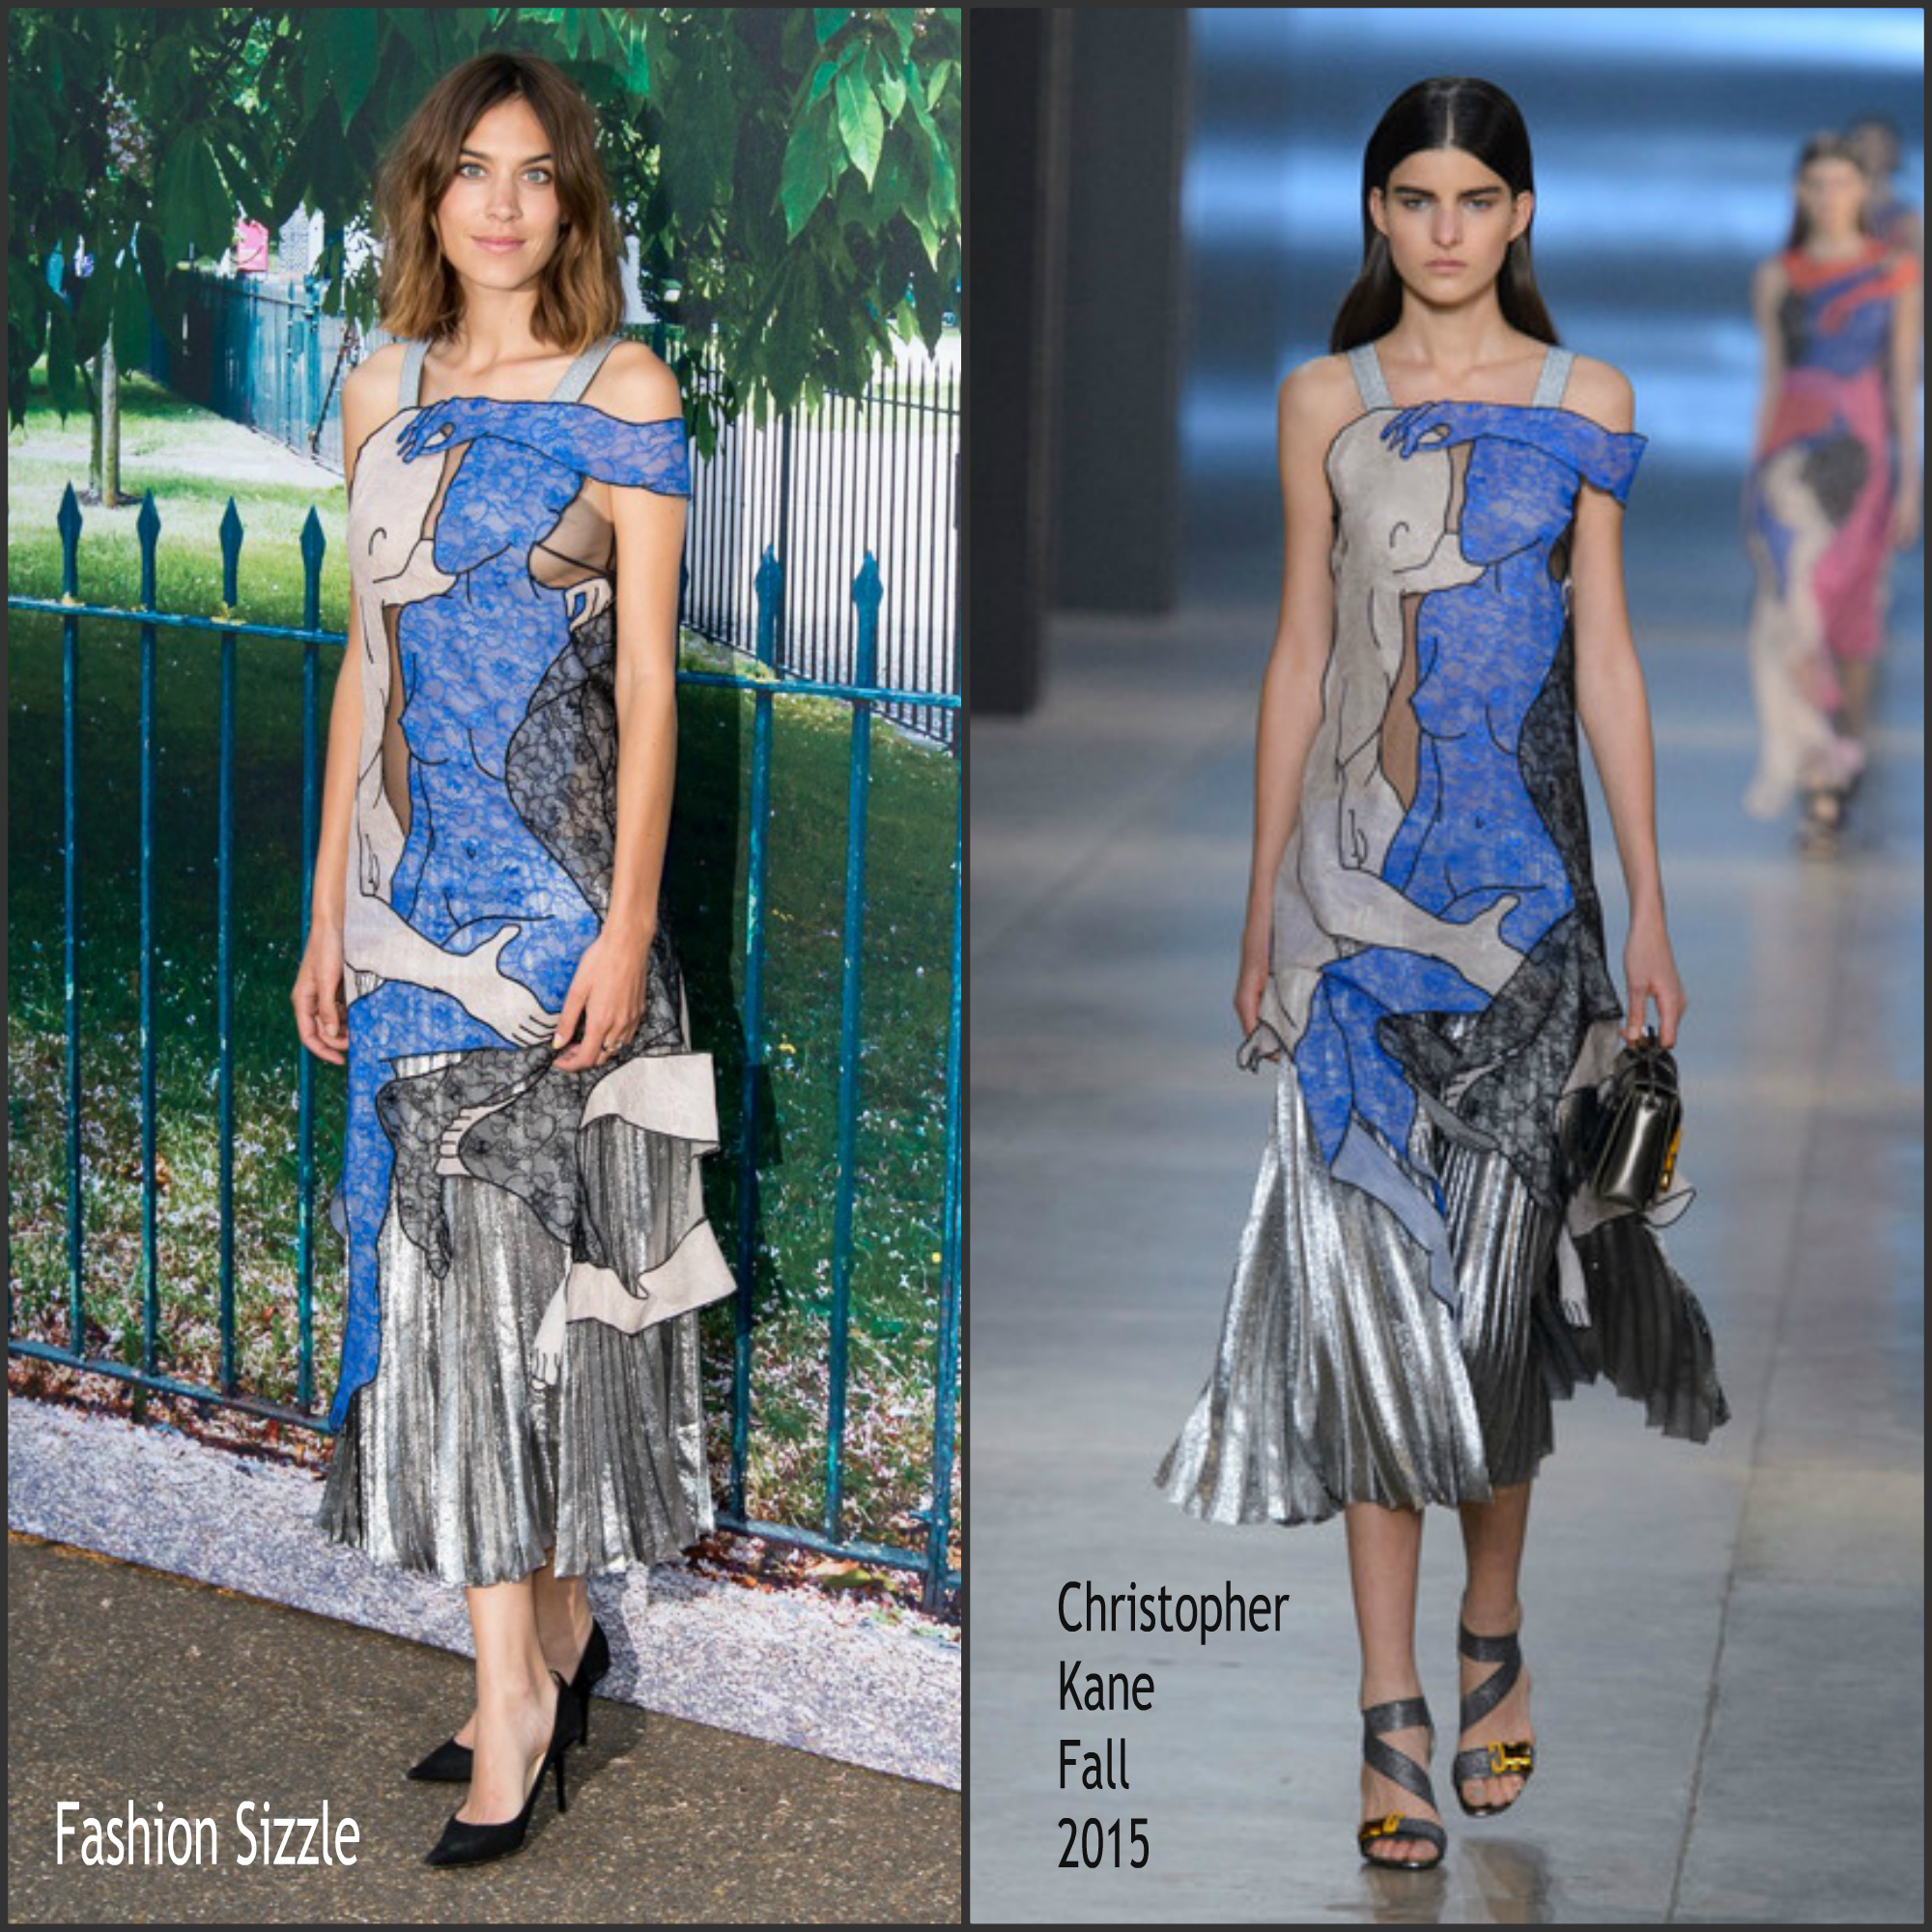 alexa-chung-in-christopher-kane-at-the-serpentine-gallery-summer-party